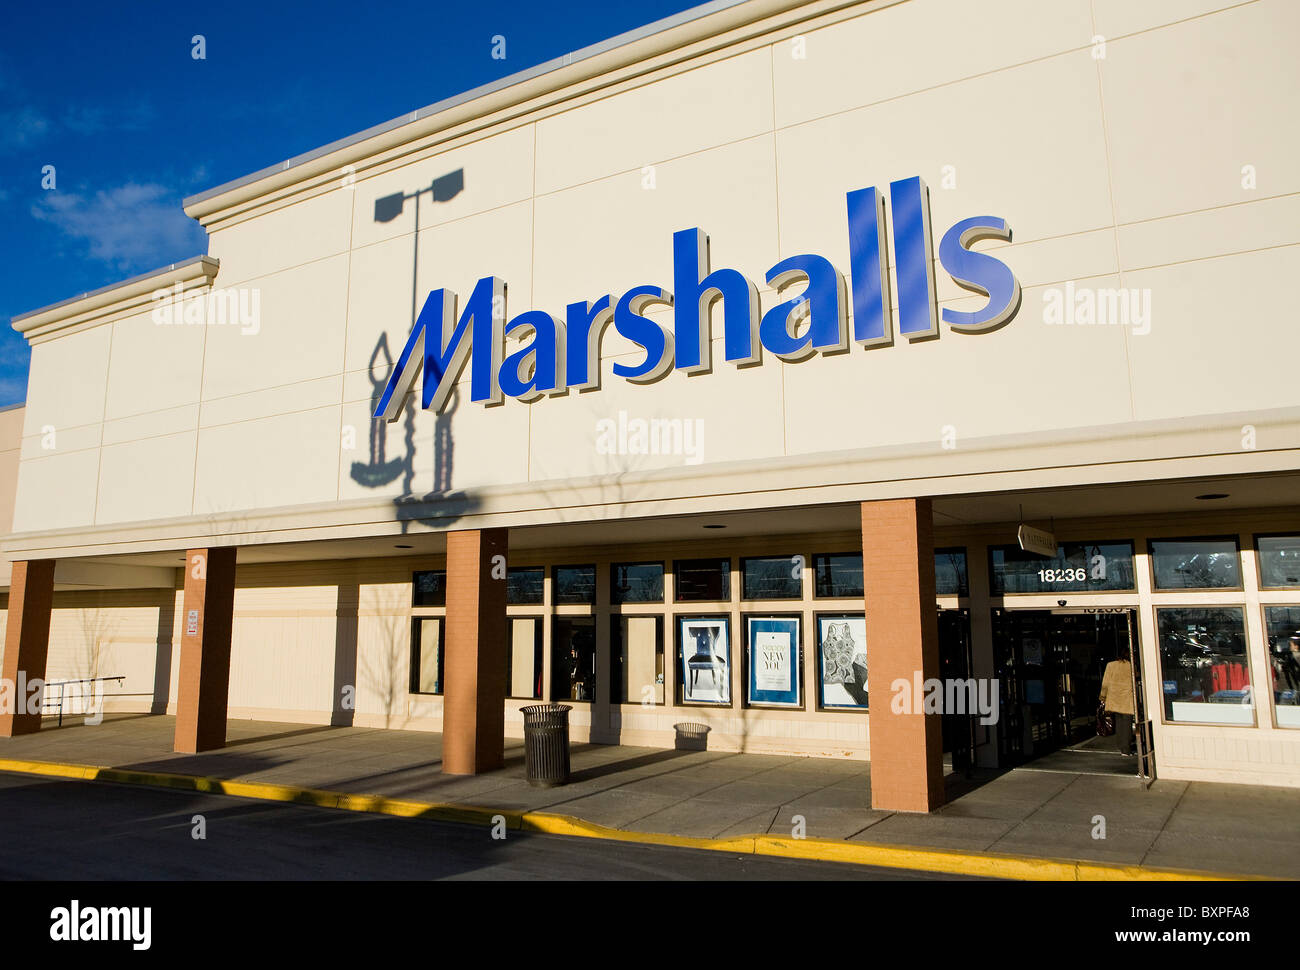 Marshalls Discount Clothing Store